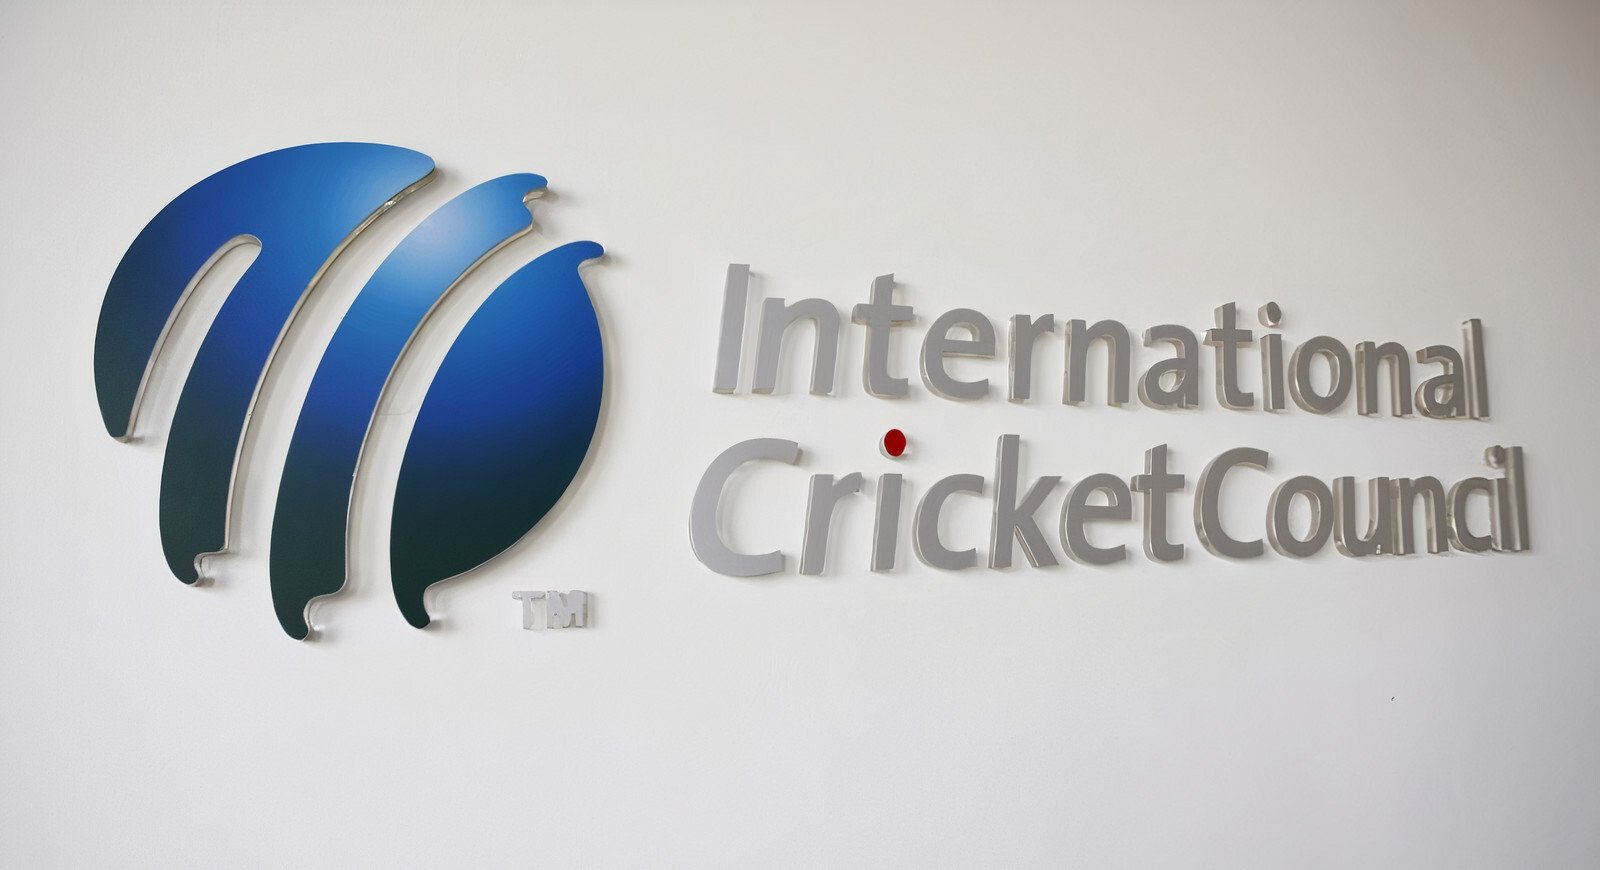 The International Cricket Council logo is seen in this undated photo at its headquarters in Dubai, UAE.